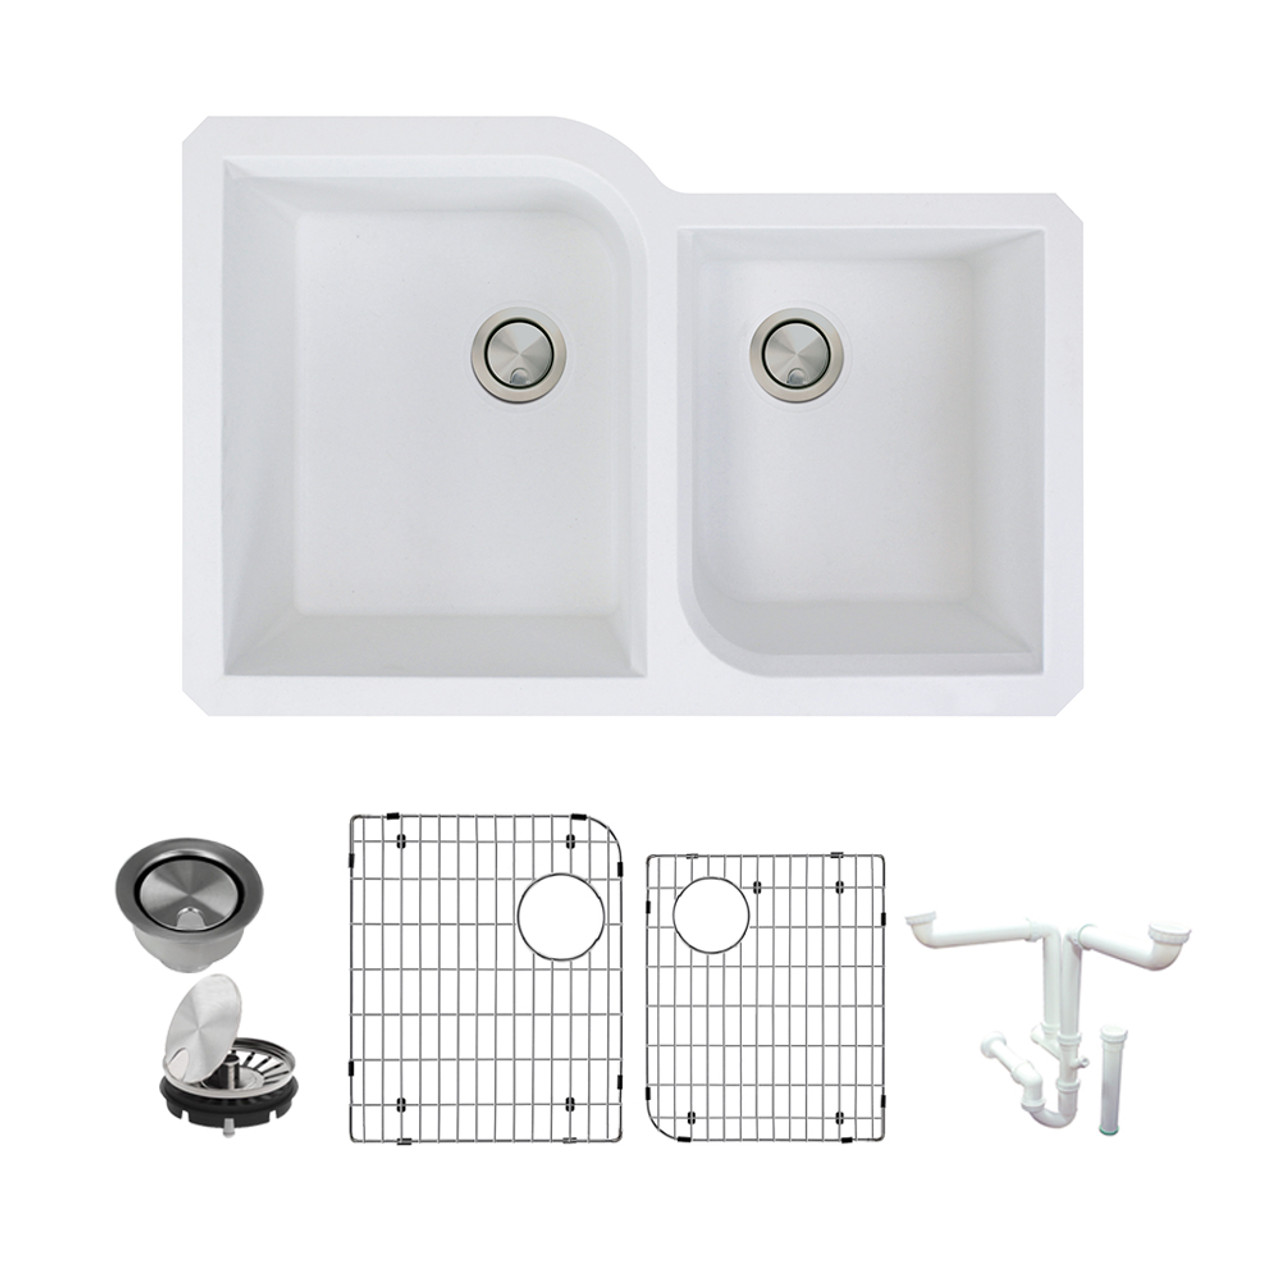 Transolid Radius Granite 31 In Undermount Kitchen Sink Kit With Grids Strainers And Drain Installation Kit In White In White K Rudo3120 01 Online Bath1 Com,Best Bedroom Air Purifier For Mold